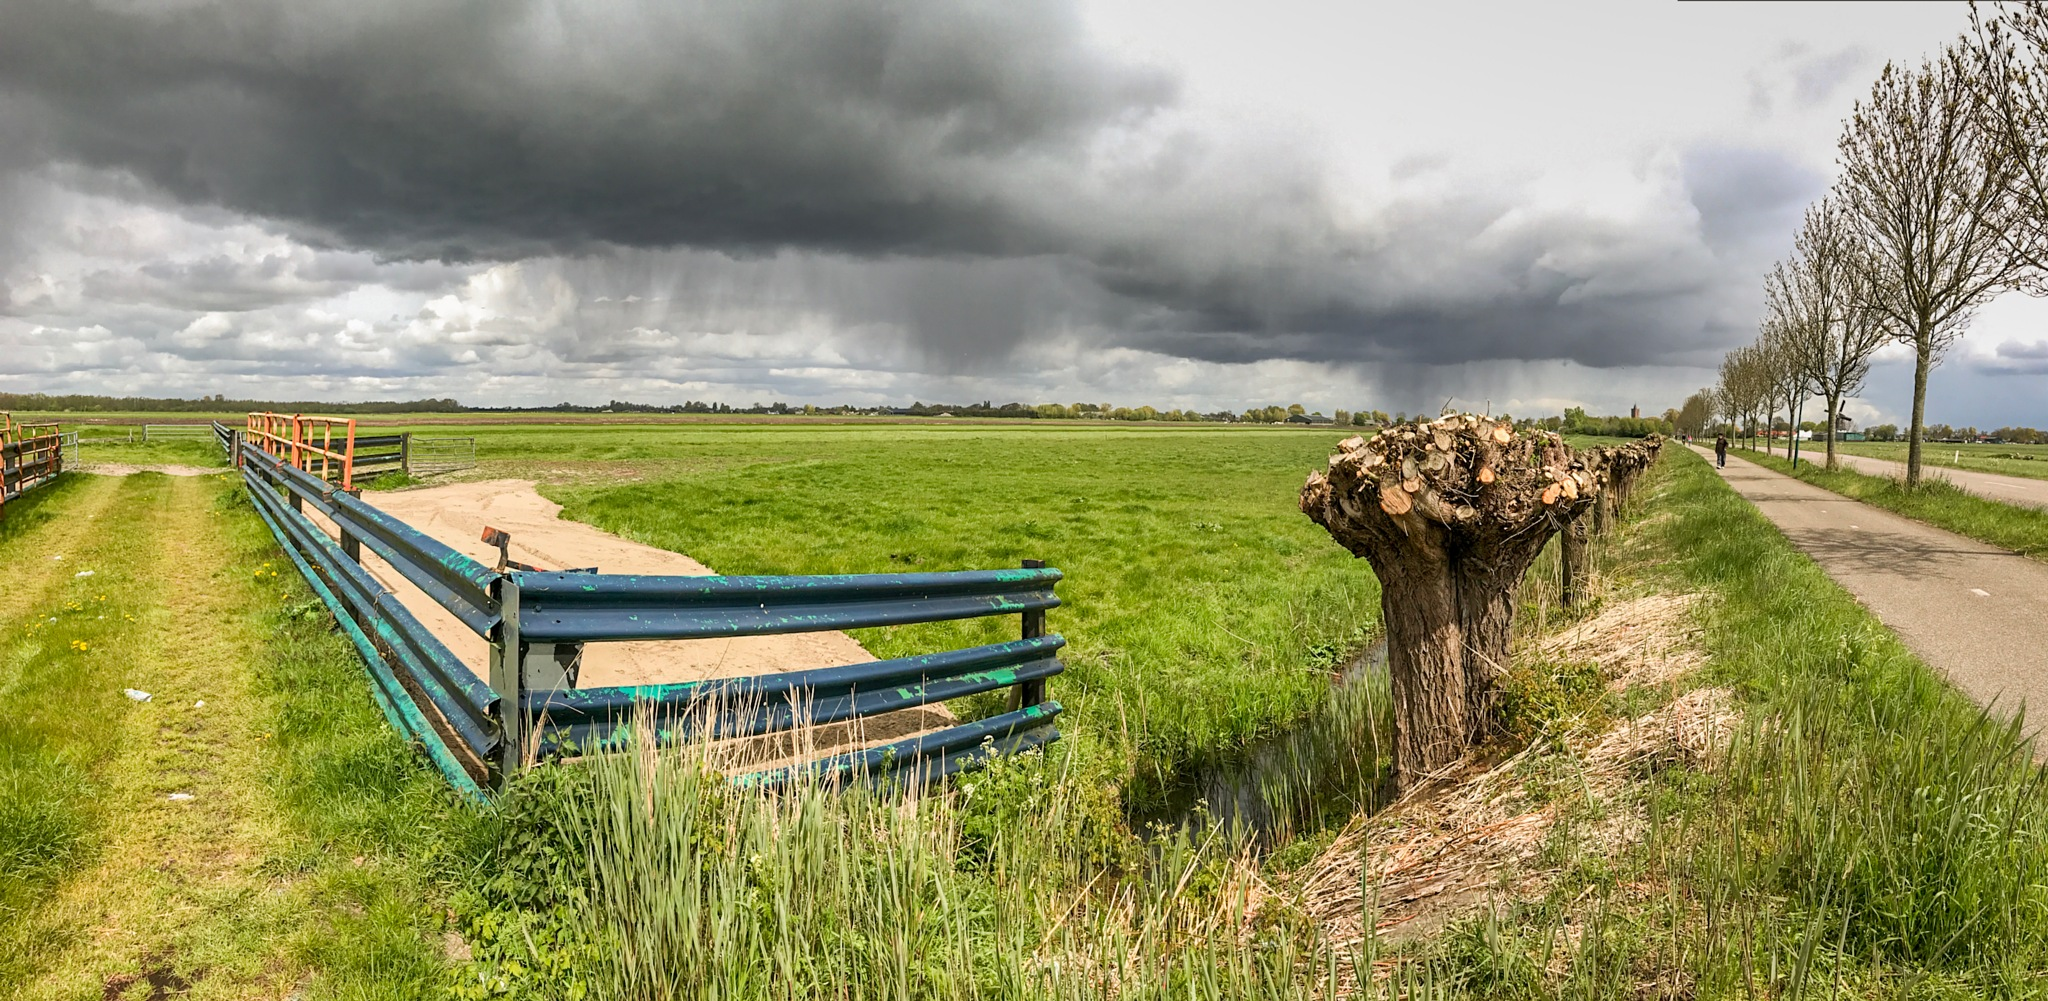 Rain over the fields of Holland by Robin Pulles